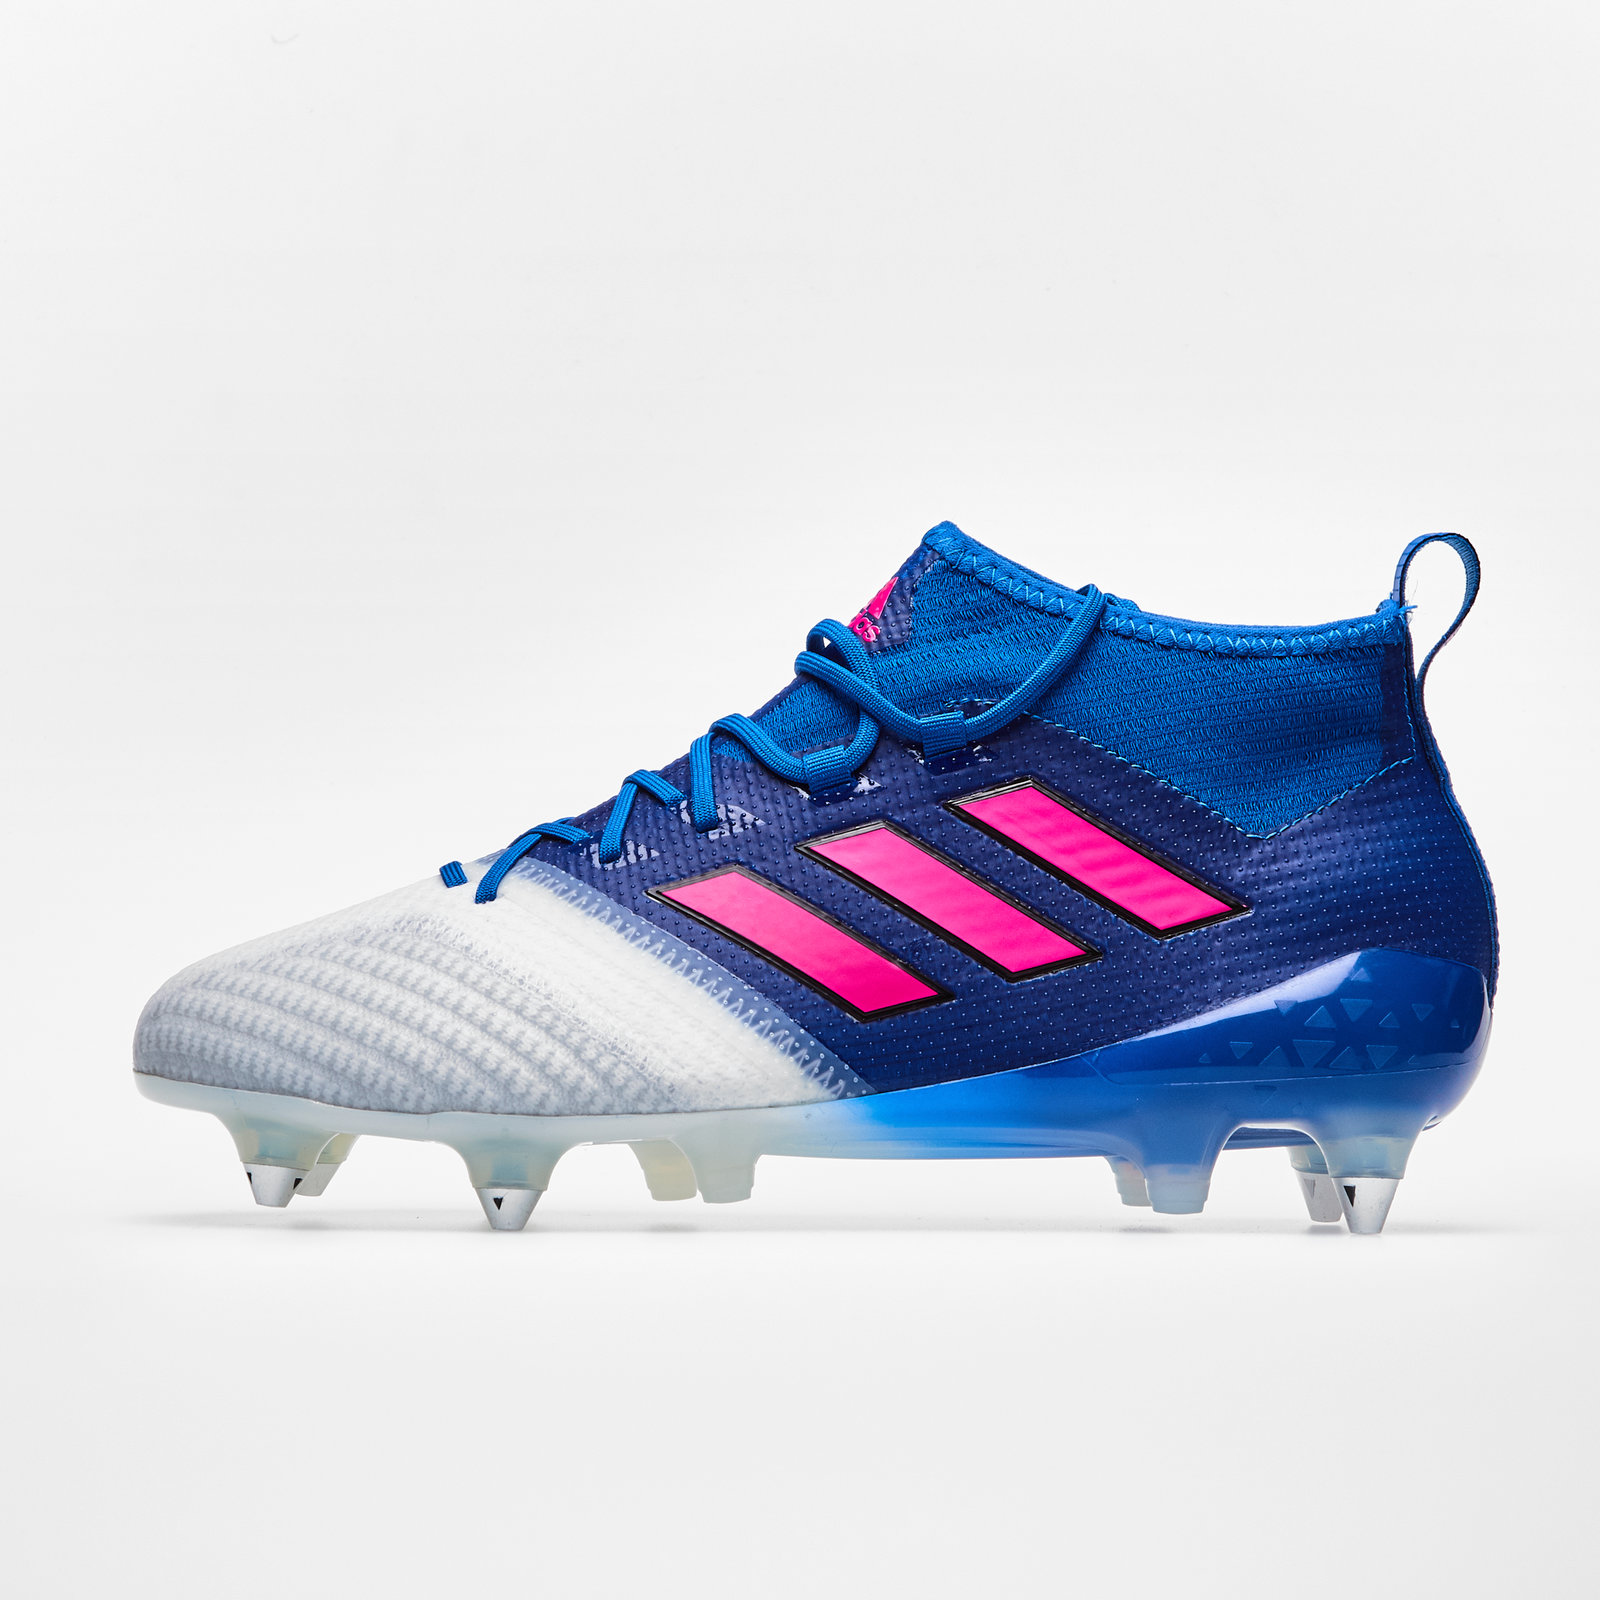 Image of Ace 17.1 Primeknit SG Football Boots